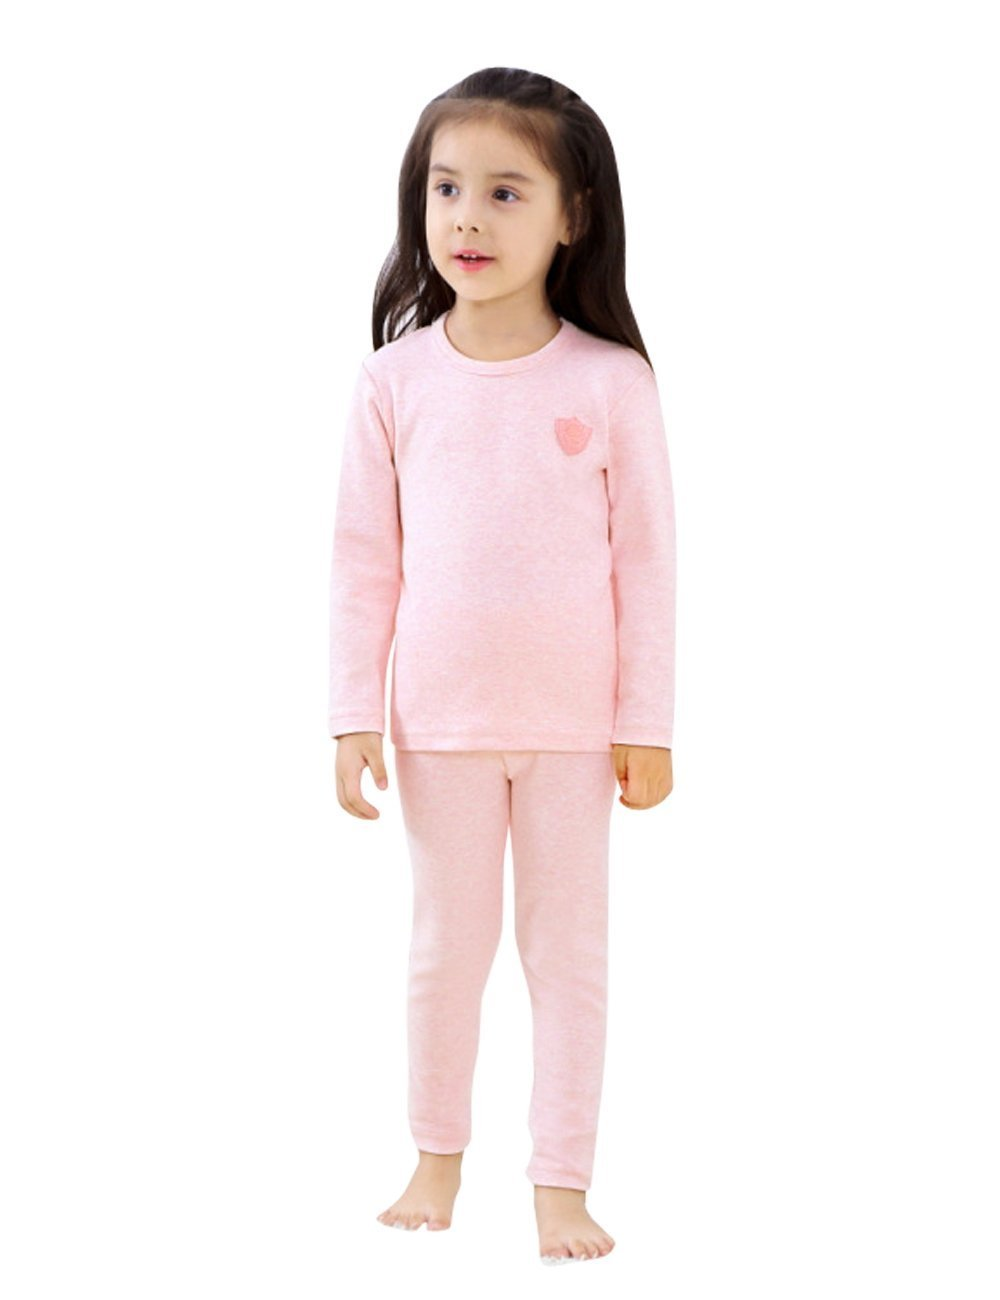 Menschwear Girl's Soft Thermal Underwear Set Long Top and Bottom (140CM,Light-Pink)